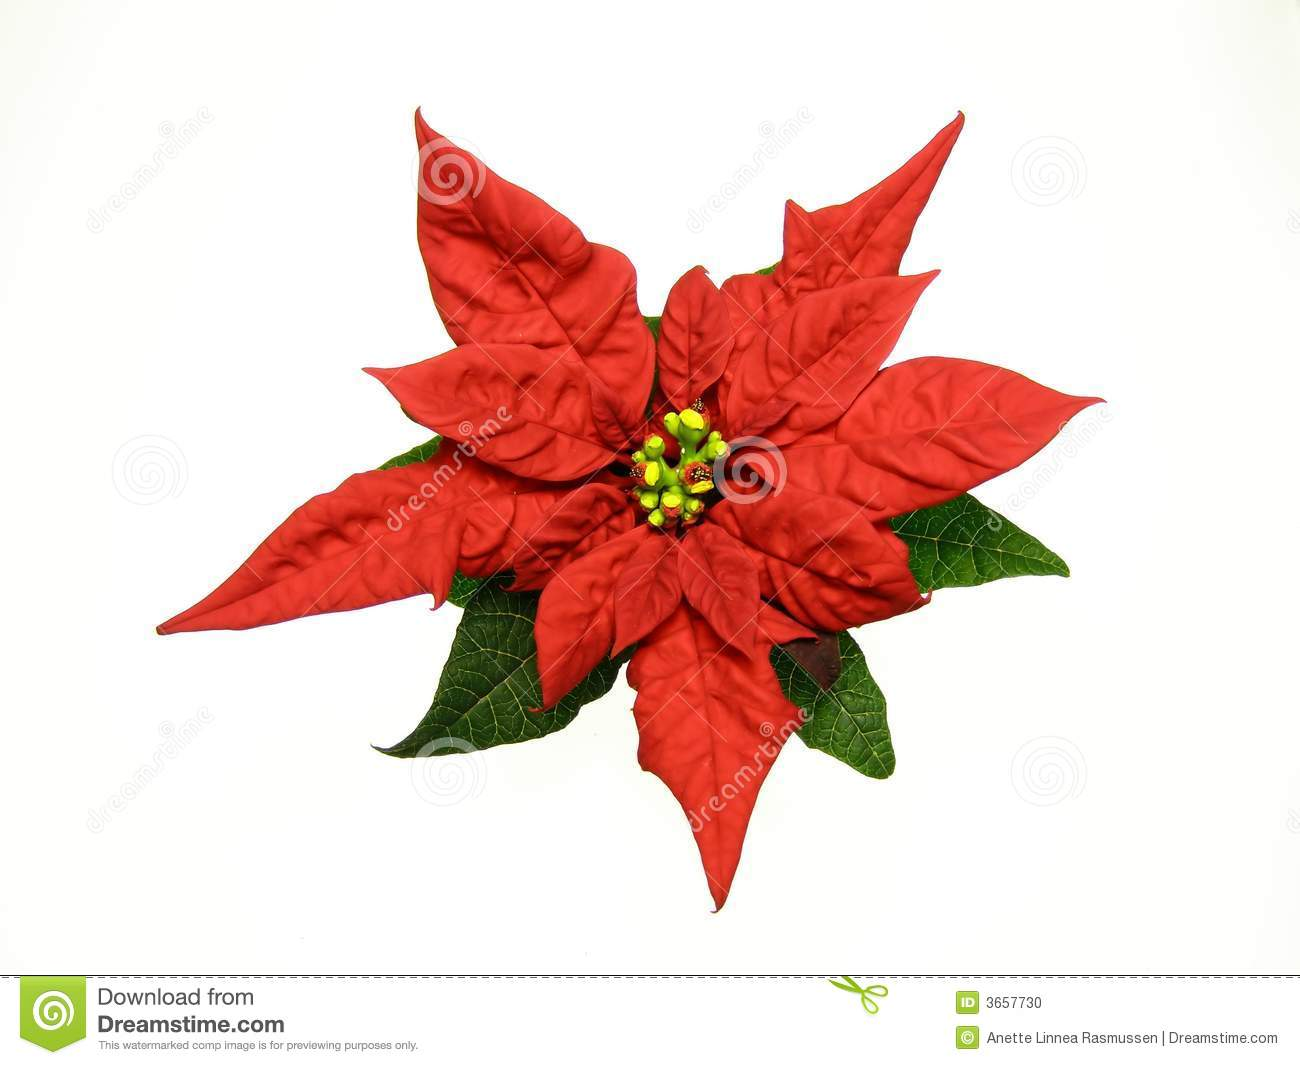 poinsettias christmas flower stock photos, images,  pictures, Natural flower